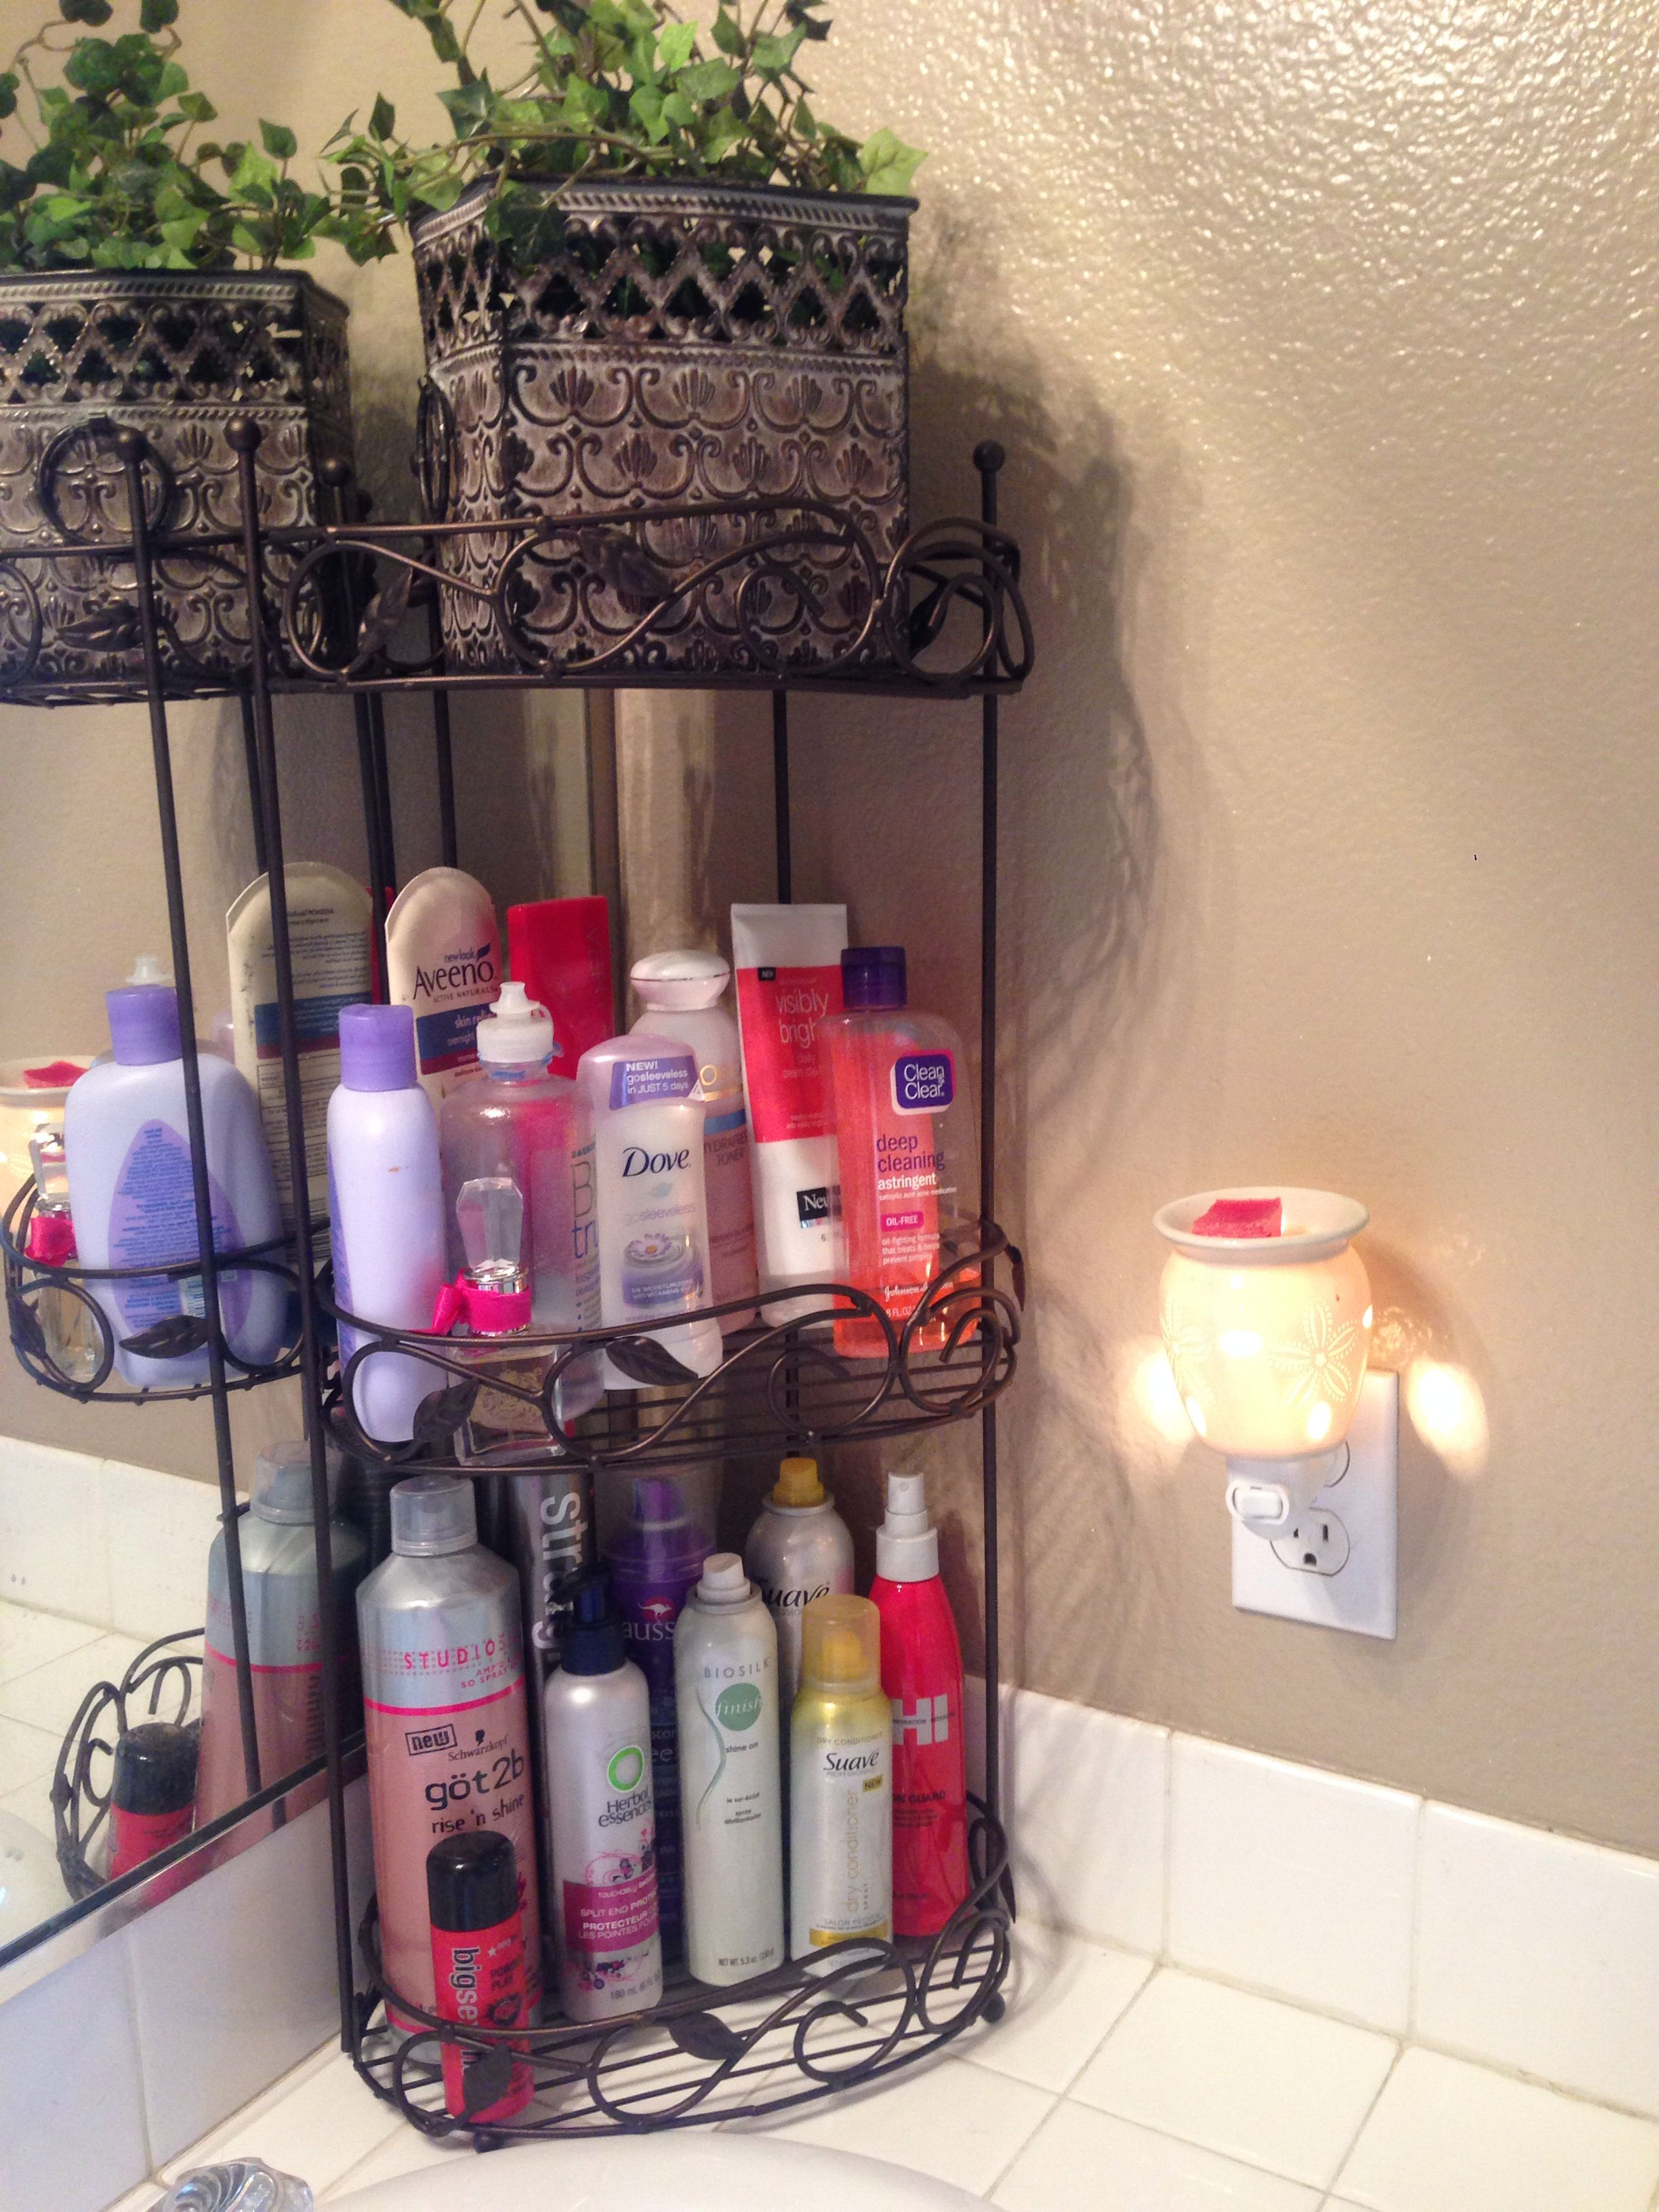 Shower Caddy To Clear Up Bathroom Counter Clutter Simple And Cheap Just 10 From Ross Bathroom Counter Decor Organize Bathroom Countertop Restroom Decor